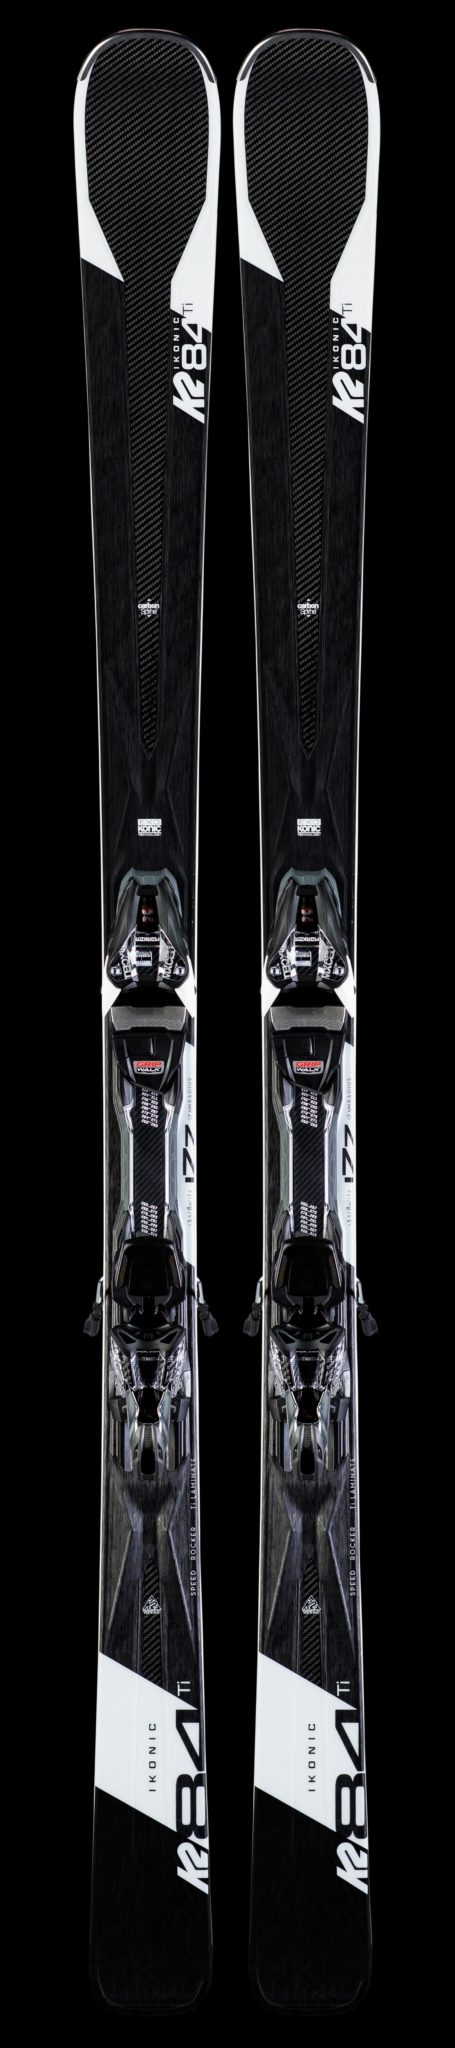 K2 Ikonic 84 Ti Skis w/ XCell 12 TCX Bindings 2019-20 at Northern Ski Works